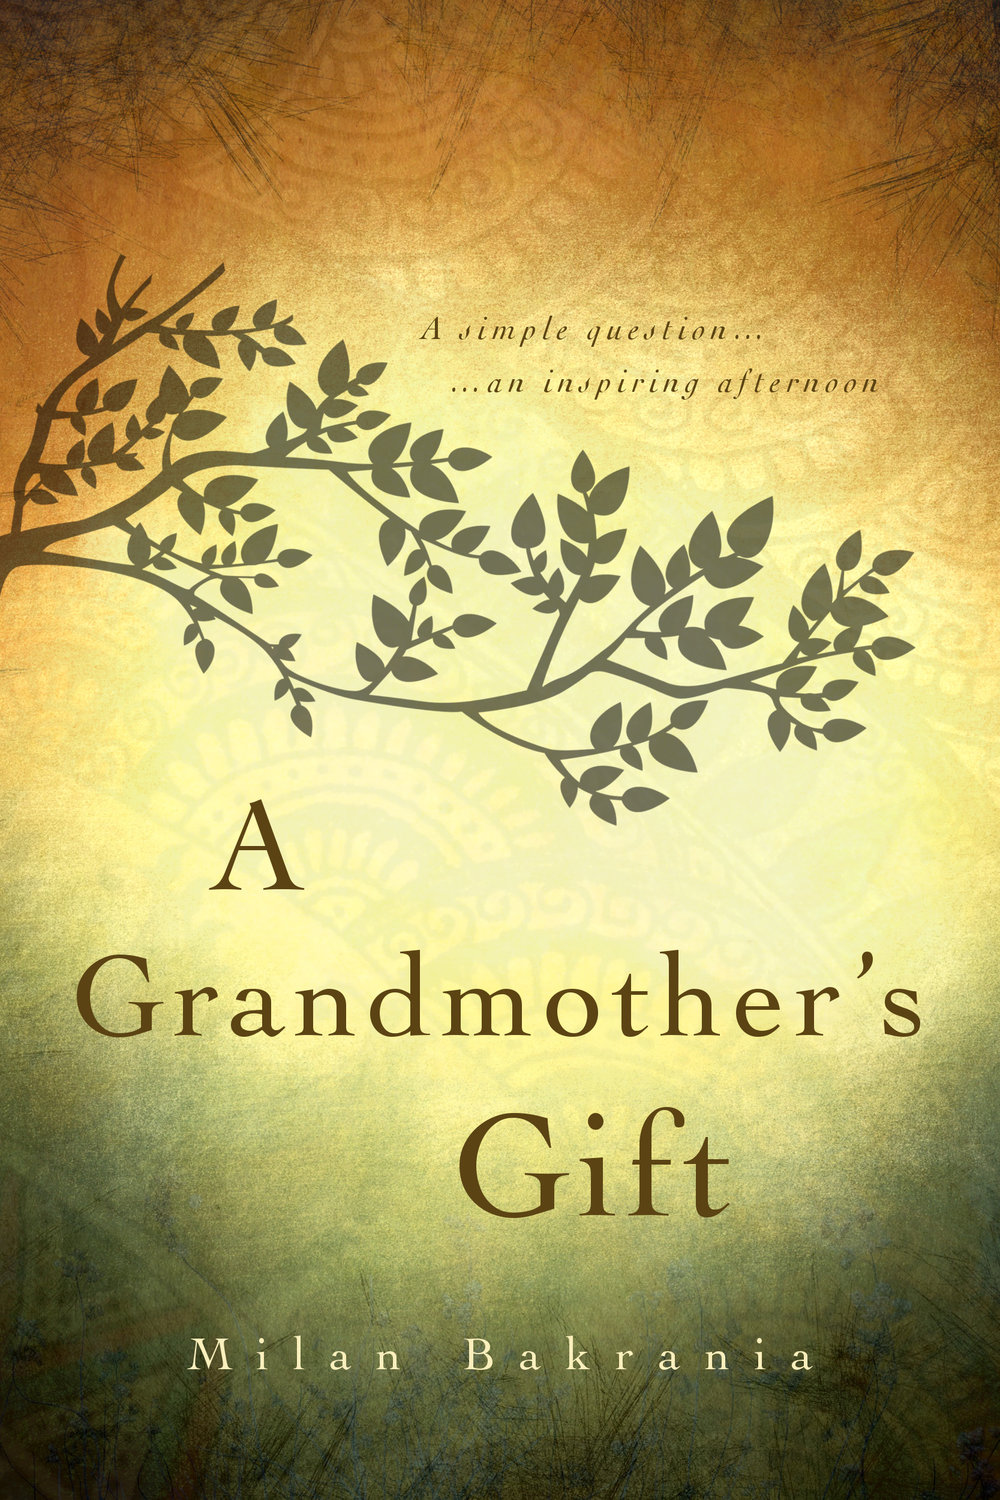 A Grandmother's Gift - It begins with a question that unfuls a lifetime of wisdom as a cynical father, his daughter and a wise, old woman gather under a willow tree one afternoon.